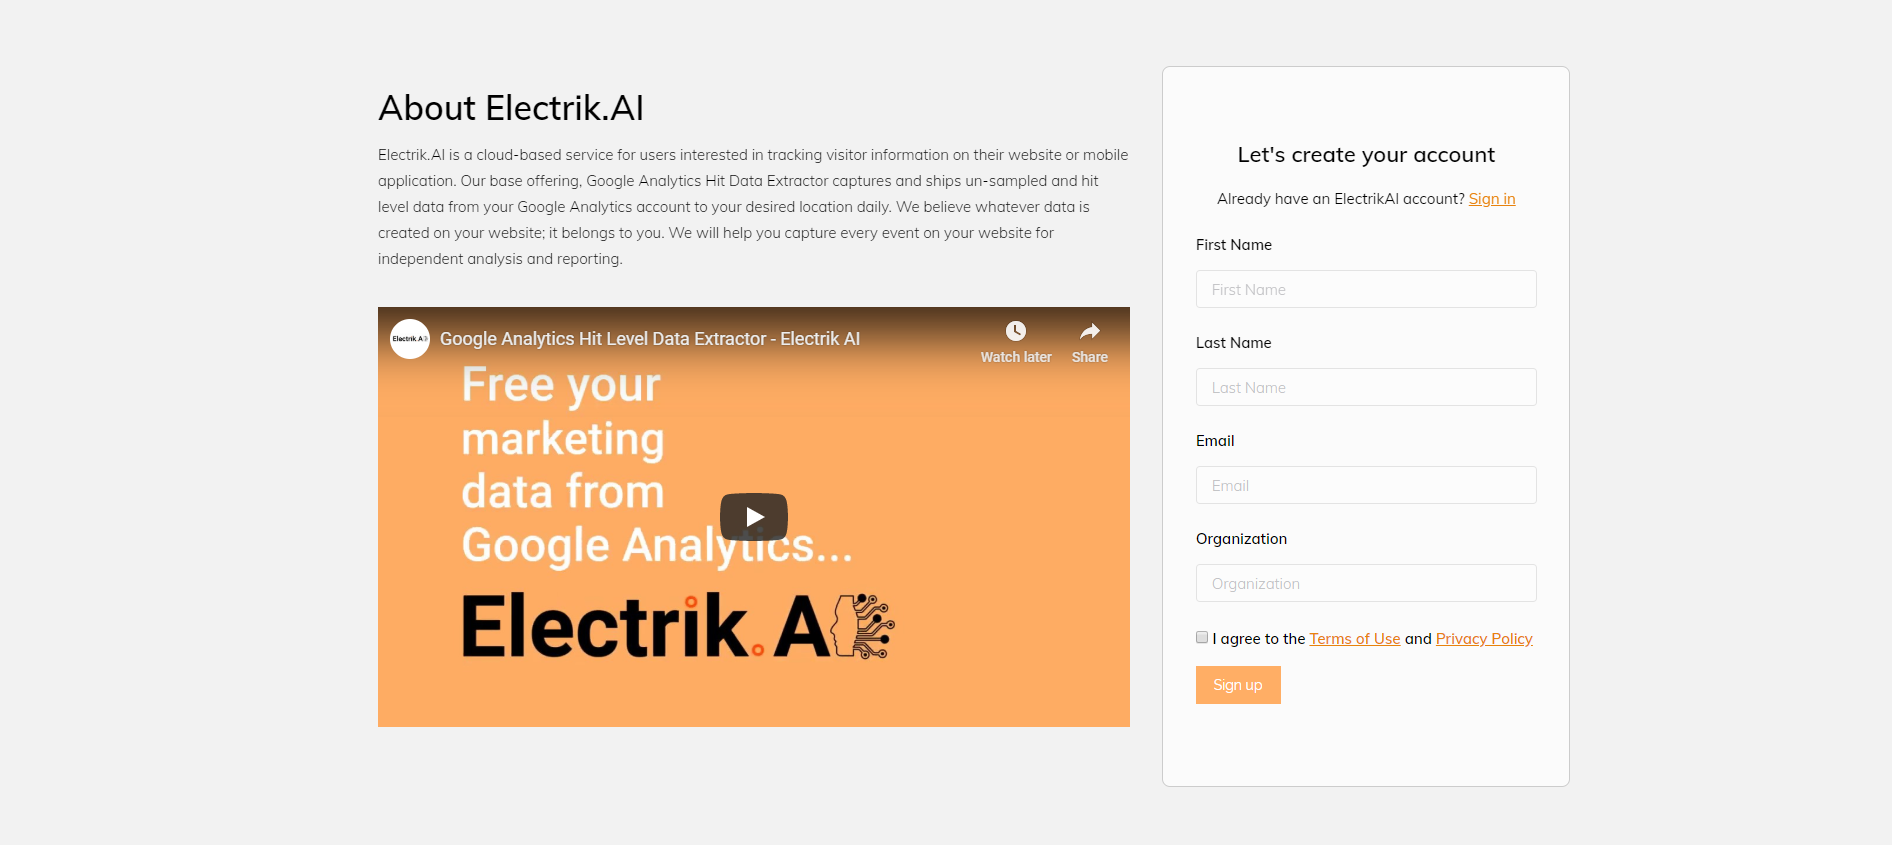 Registration-Electrik.AI